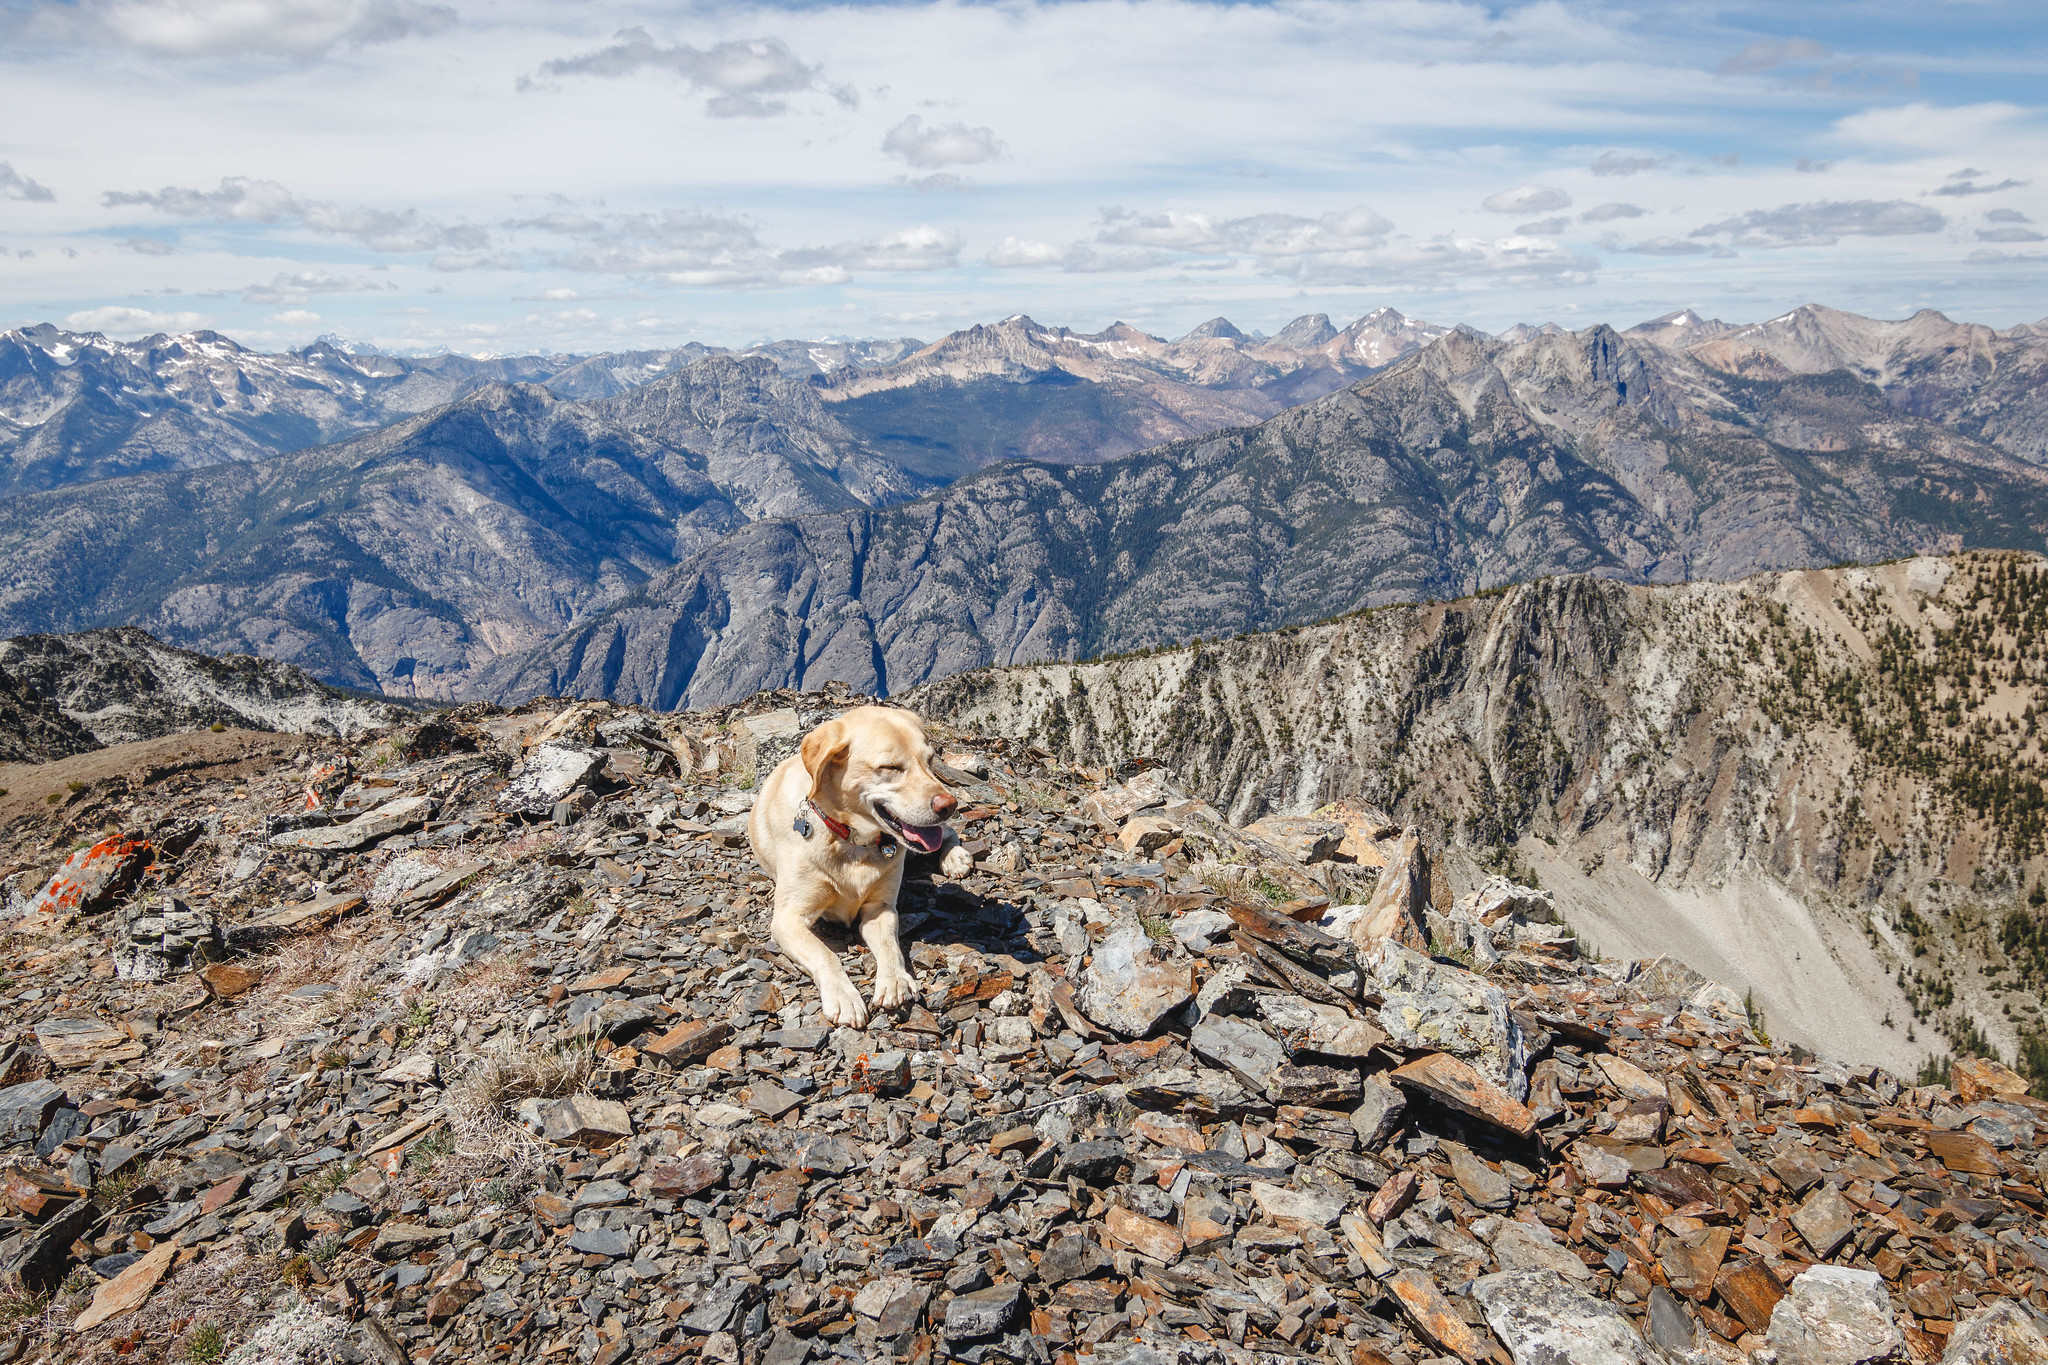 Summit dogs on Sunrise Peak 8144